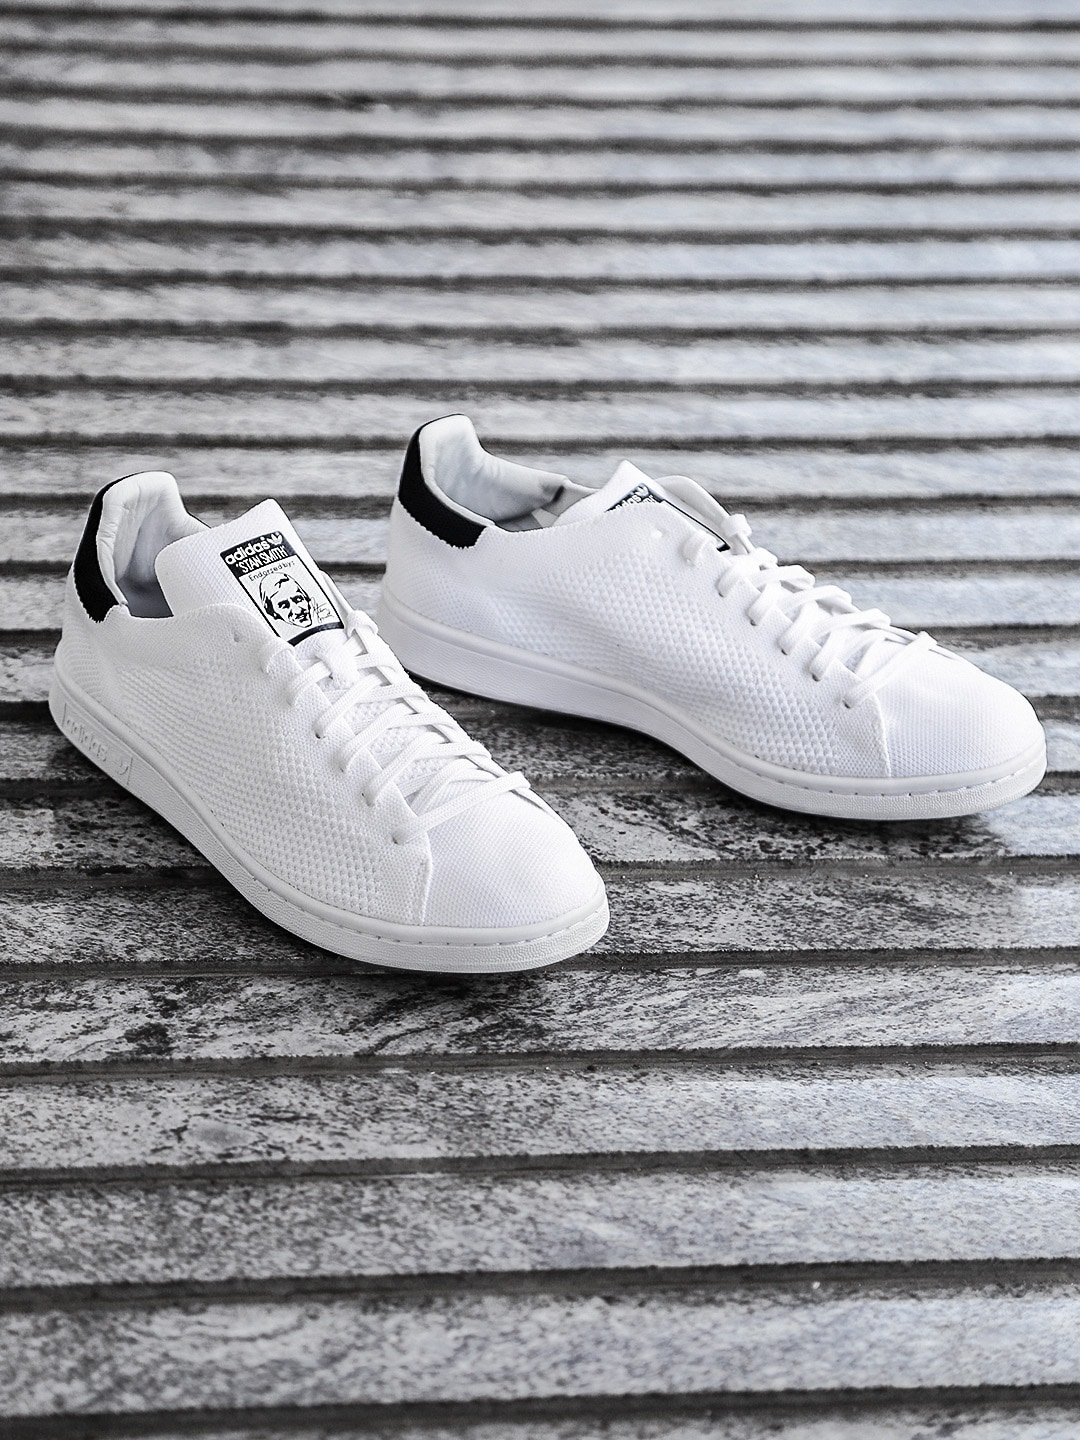 Adidas Stan Smith Sneakers - Buy Stan Smith Shoes and Sneakers Online in  India - Myntra b709bee13